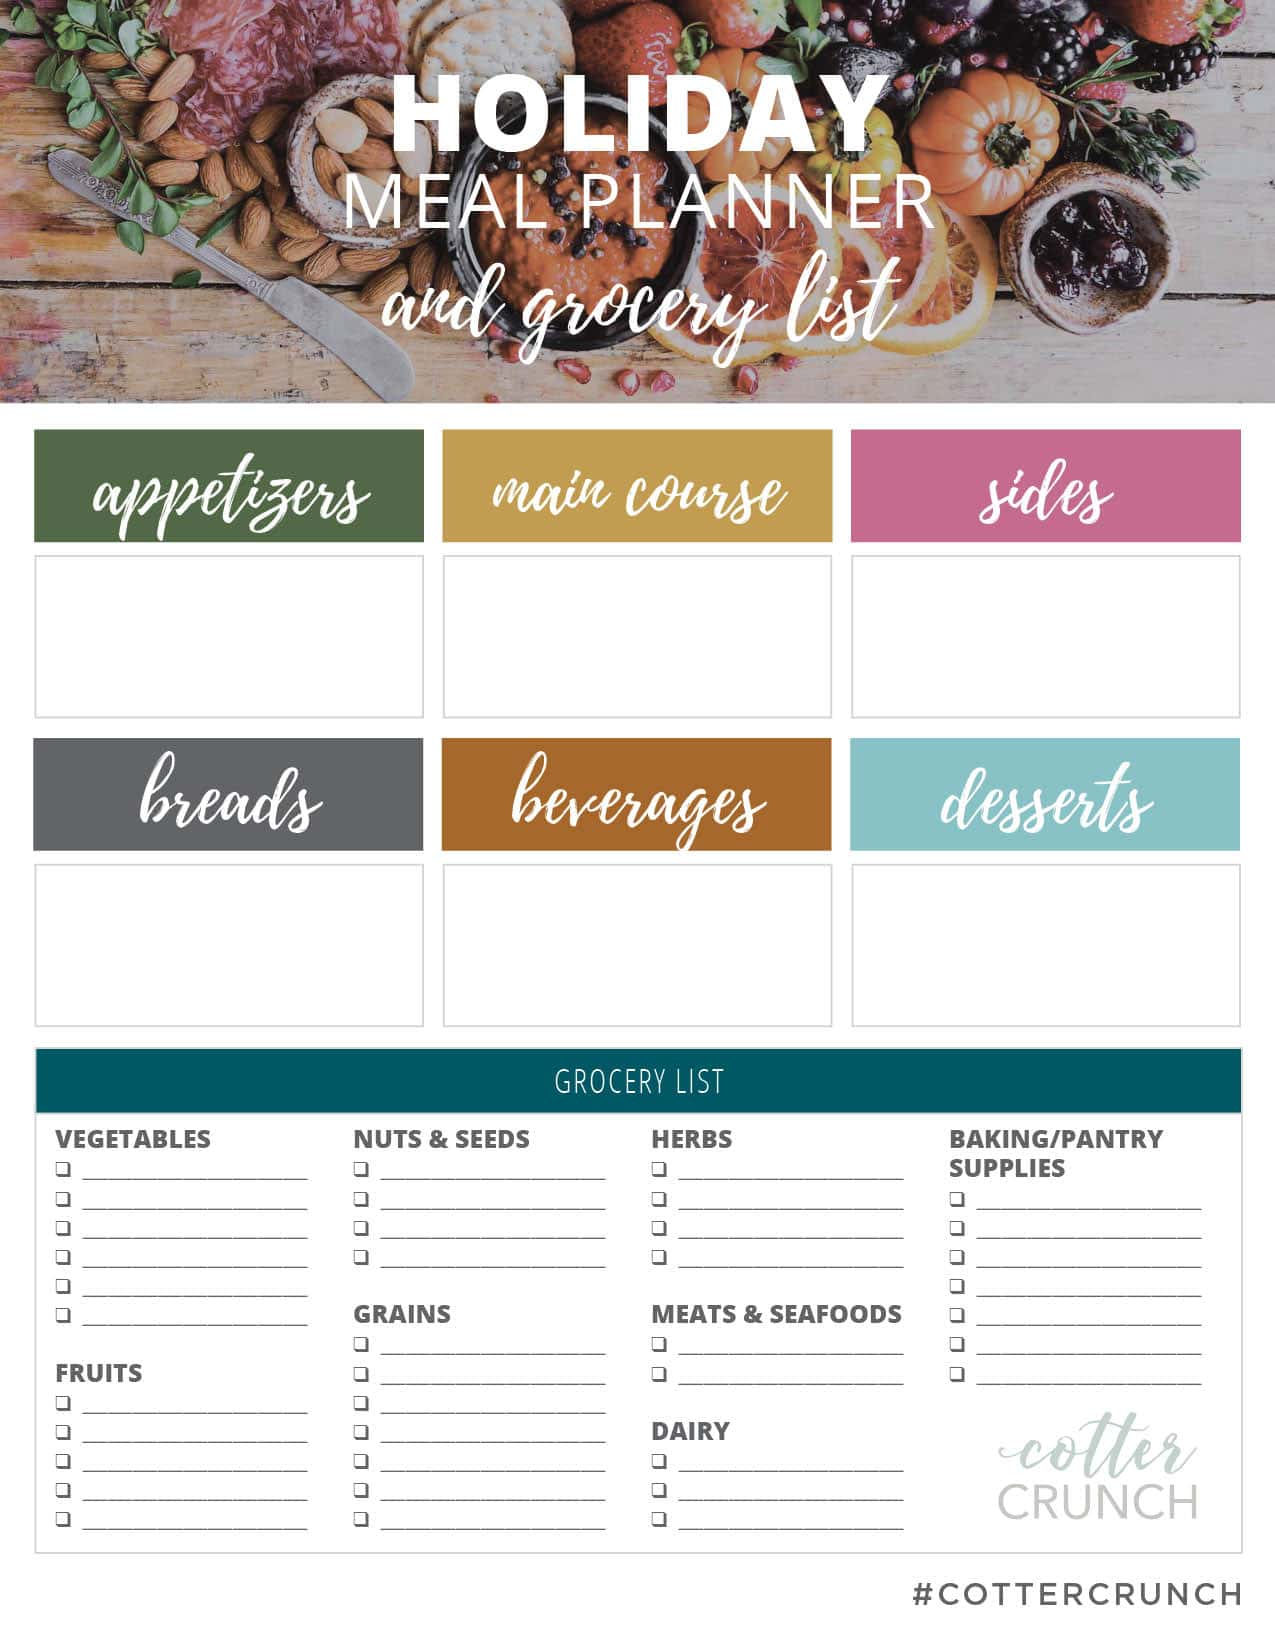 Holiday Meal Planner for Holiday menu